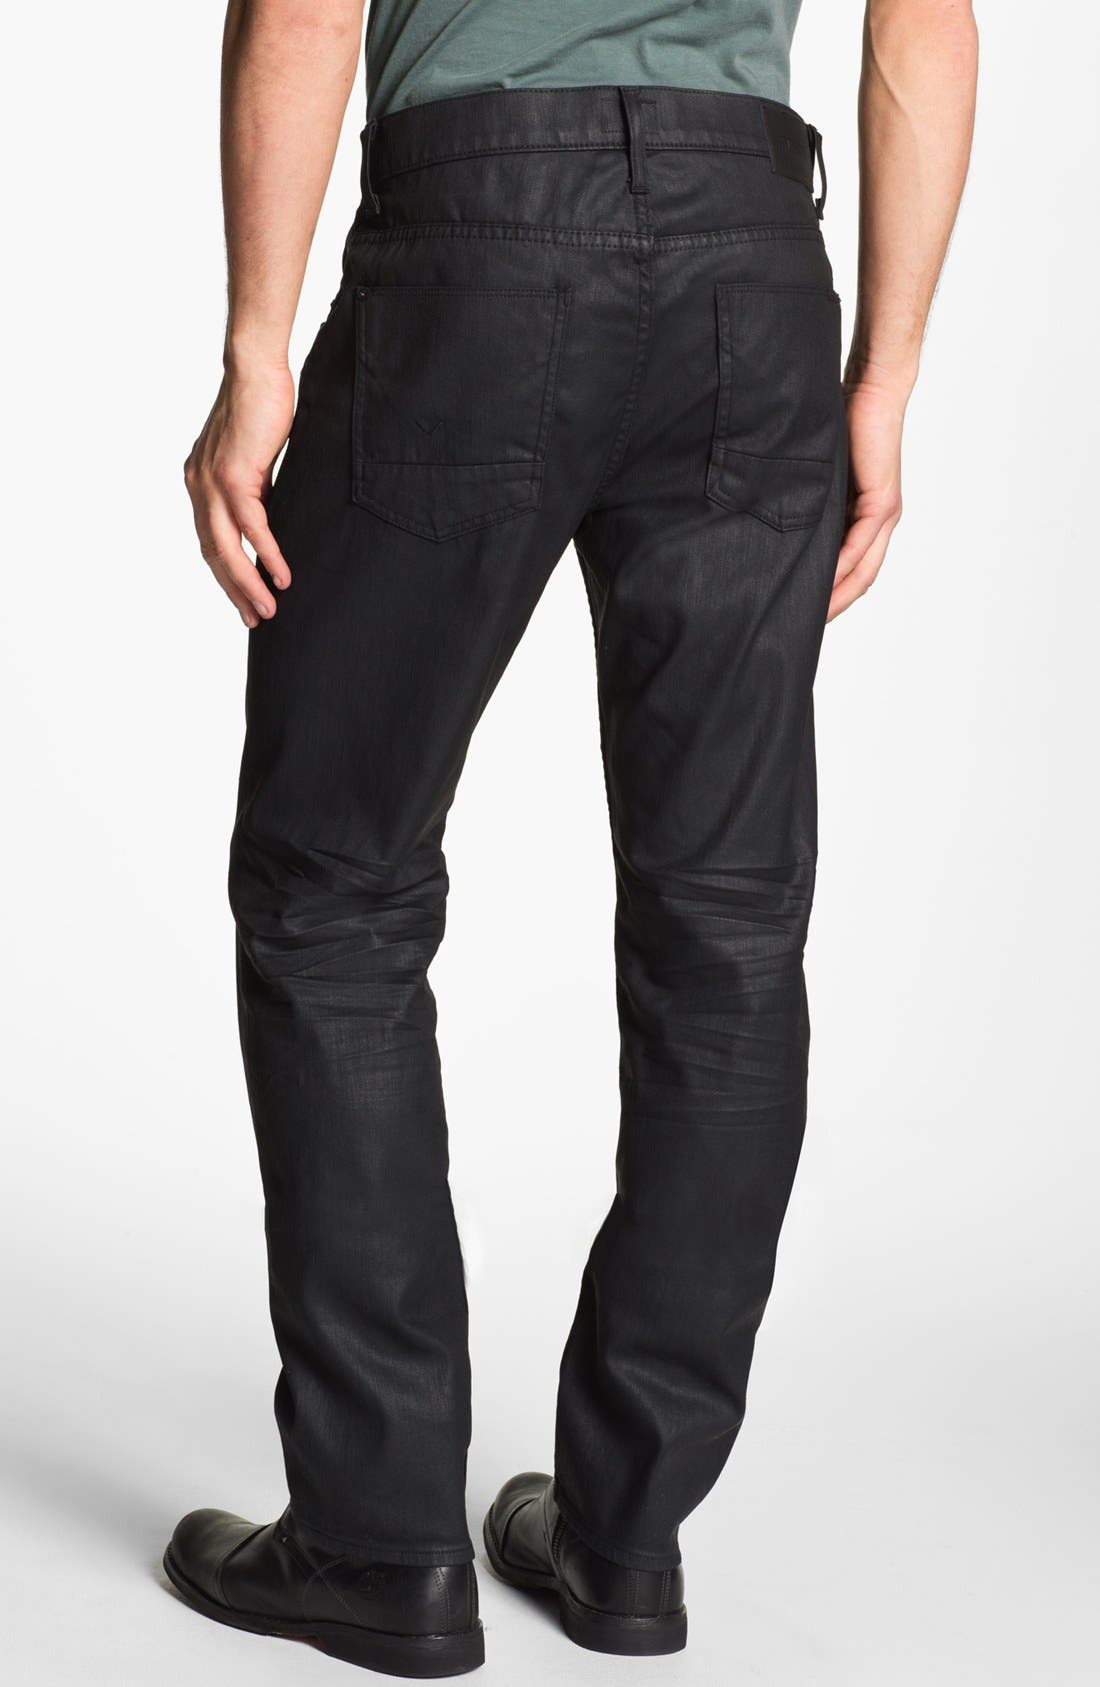 Alternate Image 1 Selected - Hudson Jeans 'Dandy' Slouchy Straight Leg Jeans (Tar)